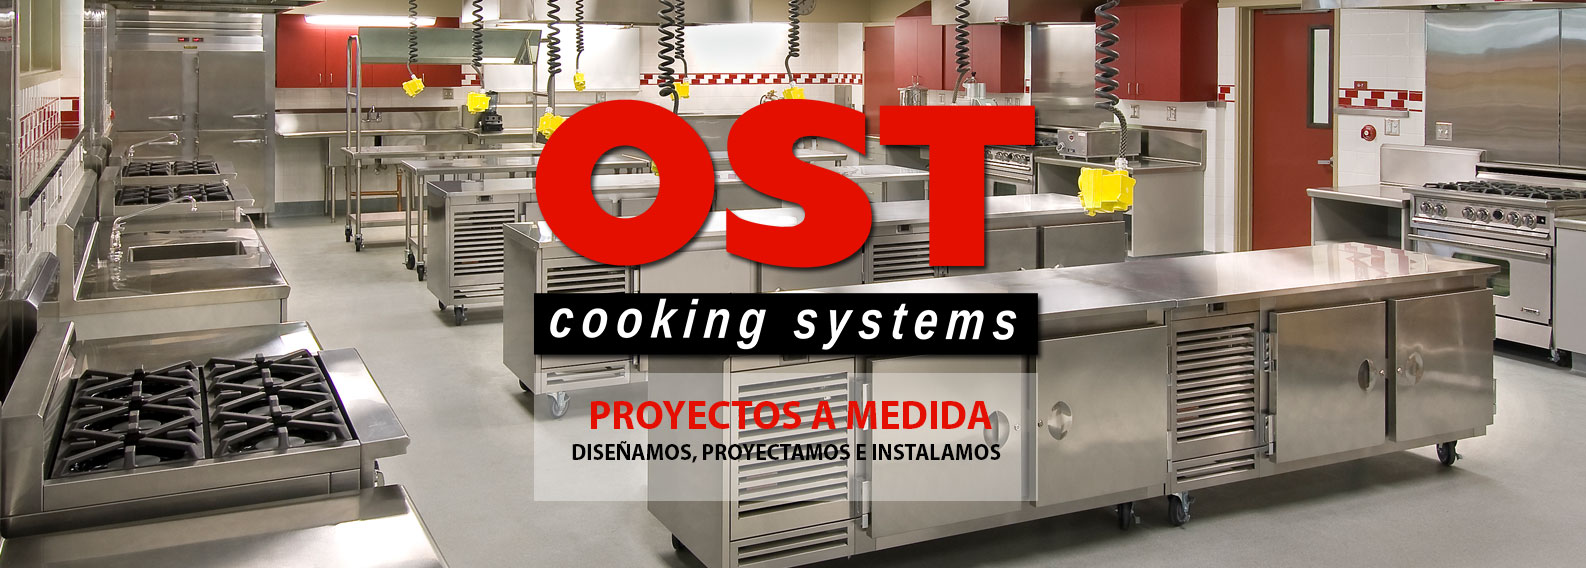 ost_cooking_b1